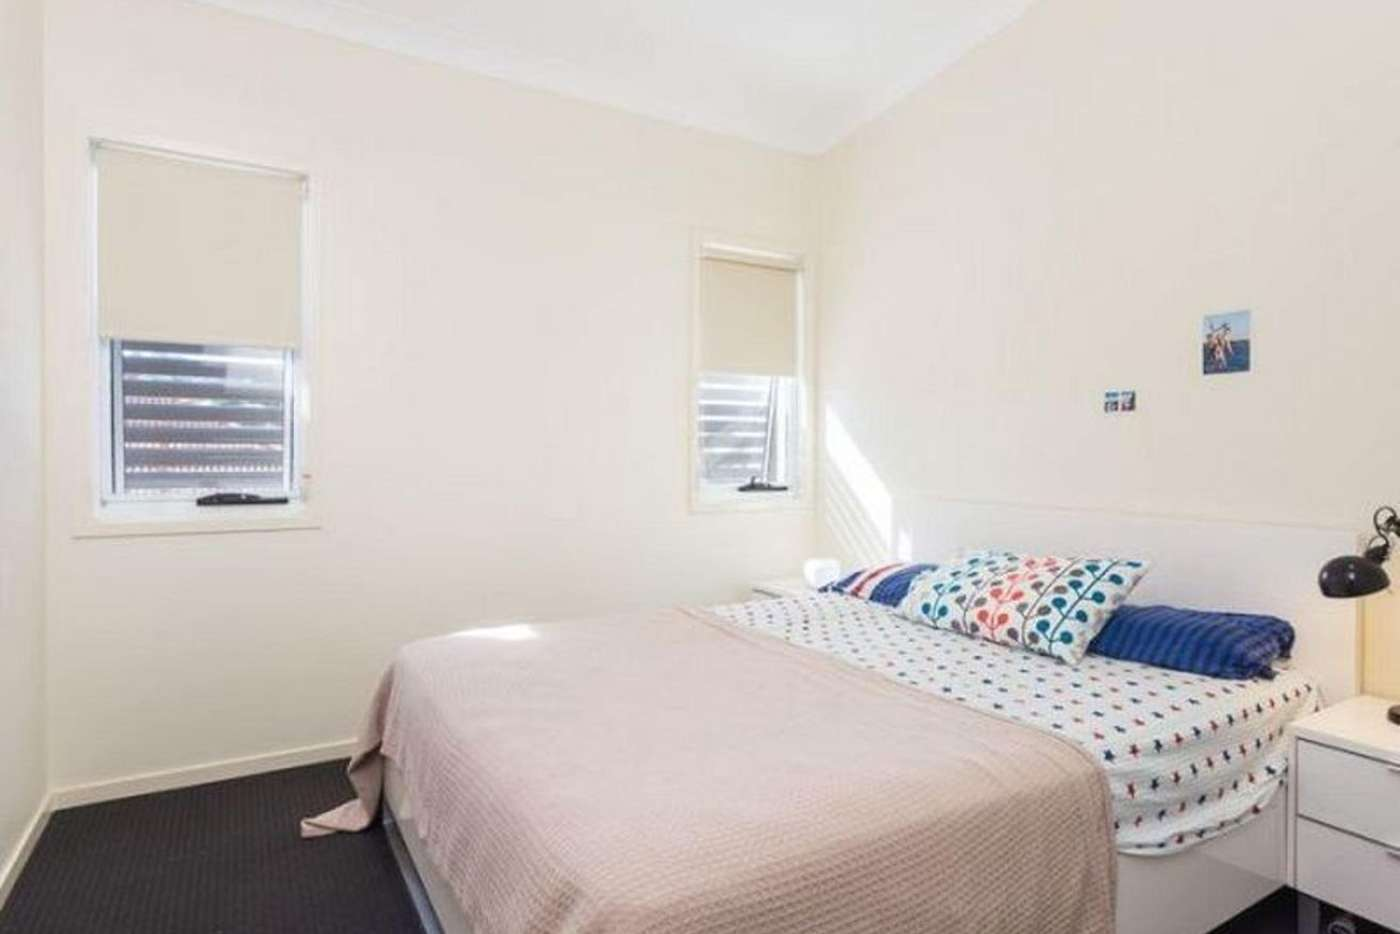 Sixth view of Homely townhouse listing, 2/9 Greening Street, Mount Gravatt QLD 4122